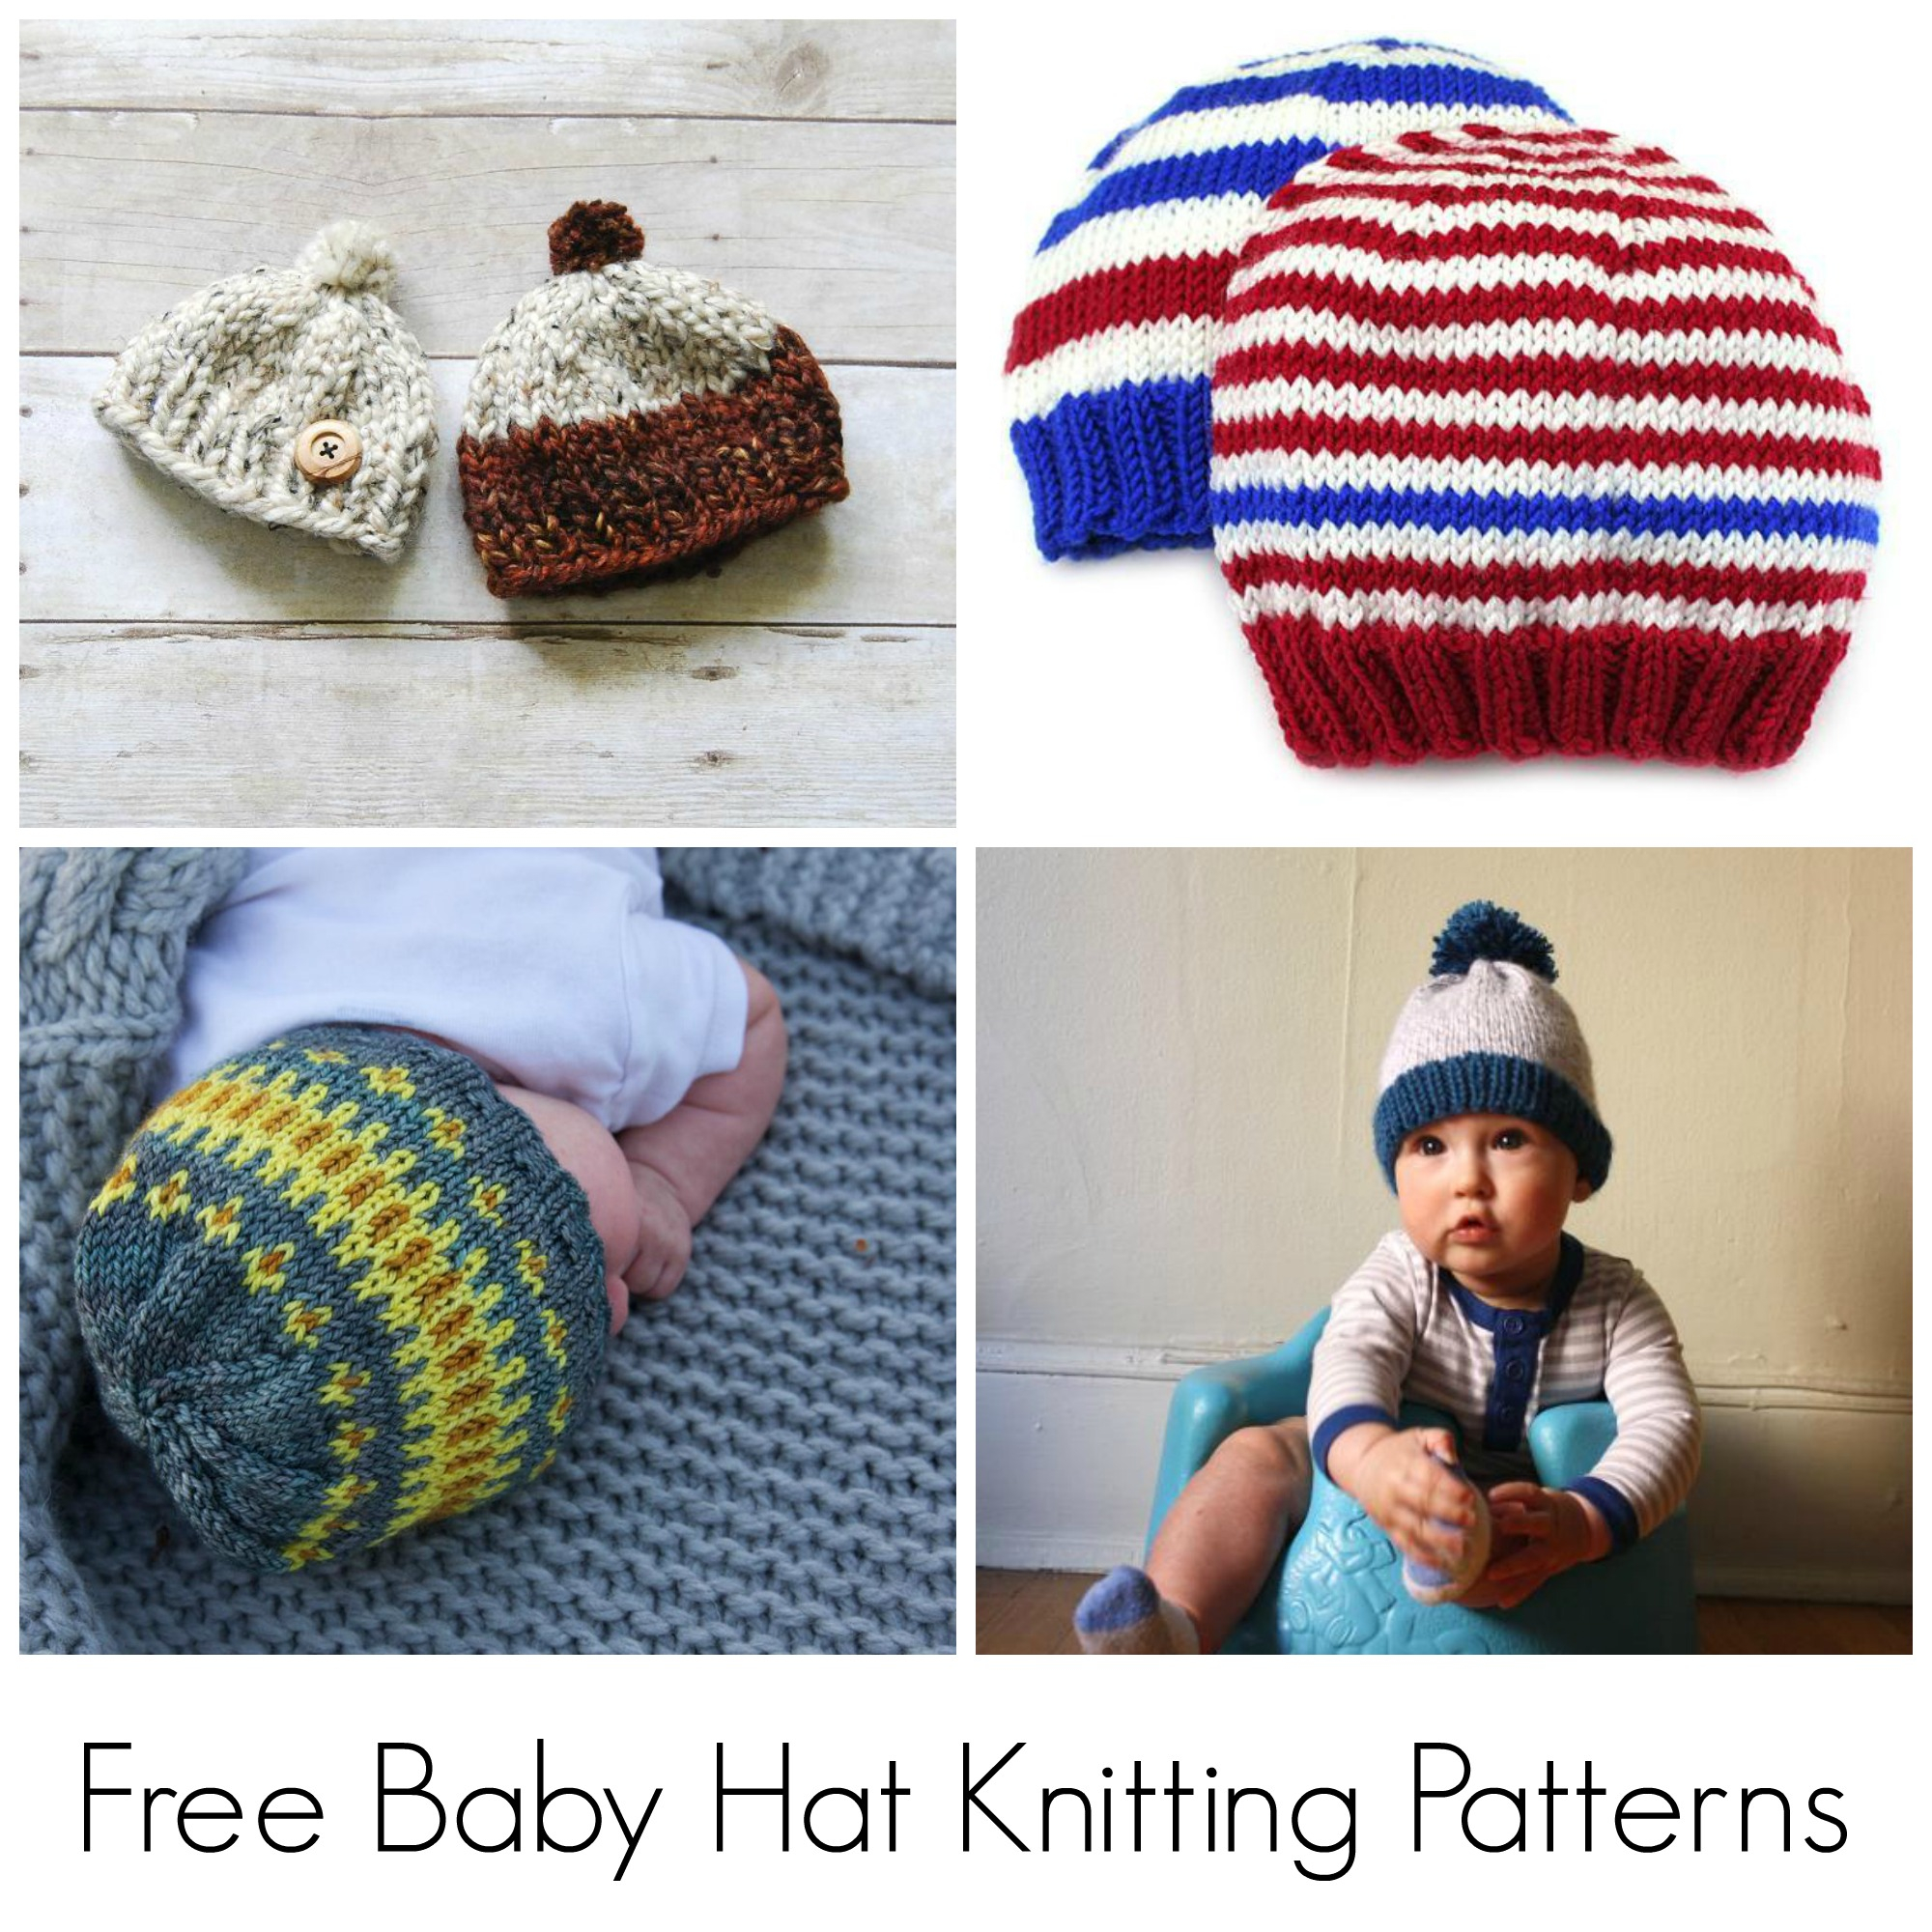 Free Baby Knitting Patterns Double Knit 10 Free Knitting Patterns For Ba Hats On Craftsy